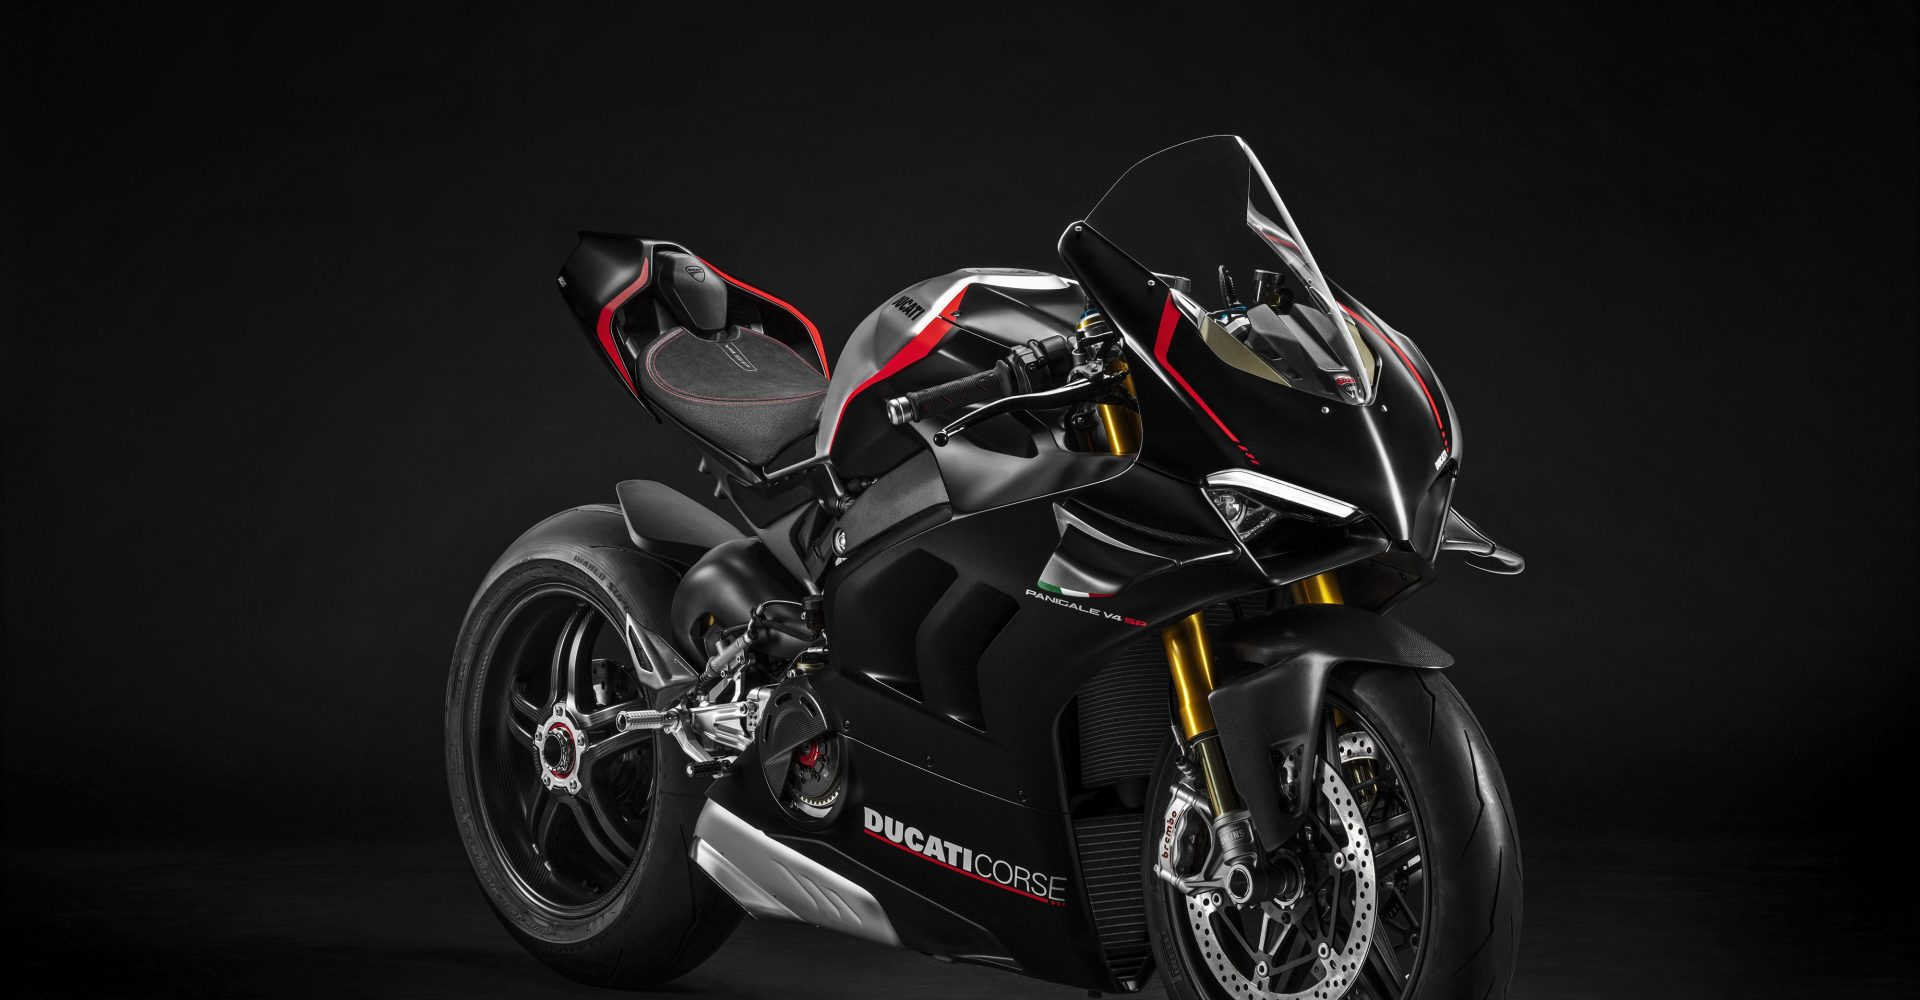 Ducati announces high-performance Panigale V4SP